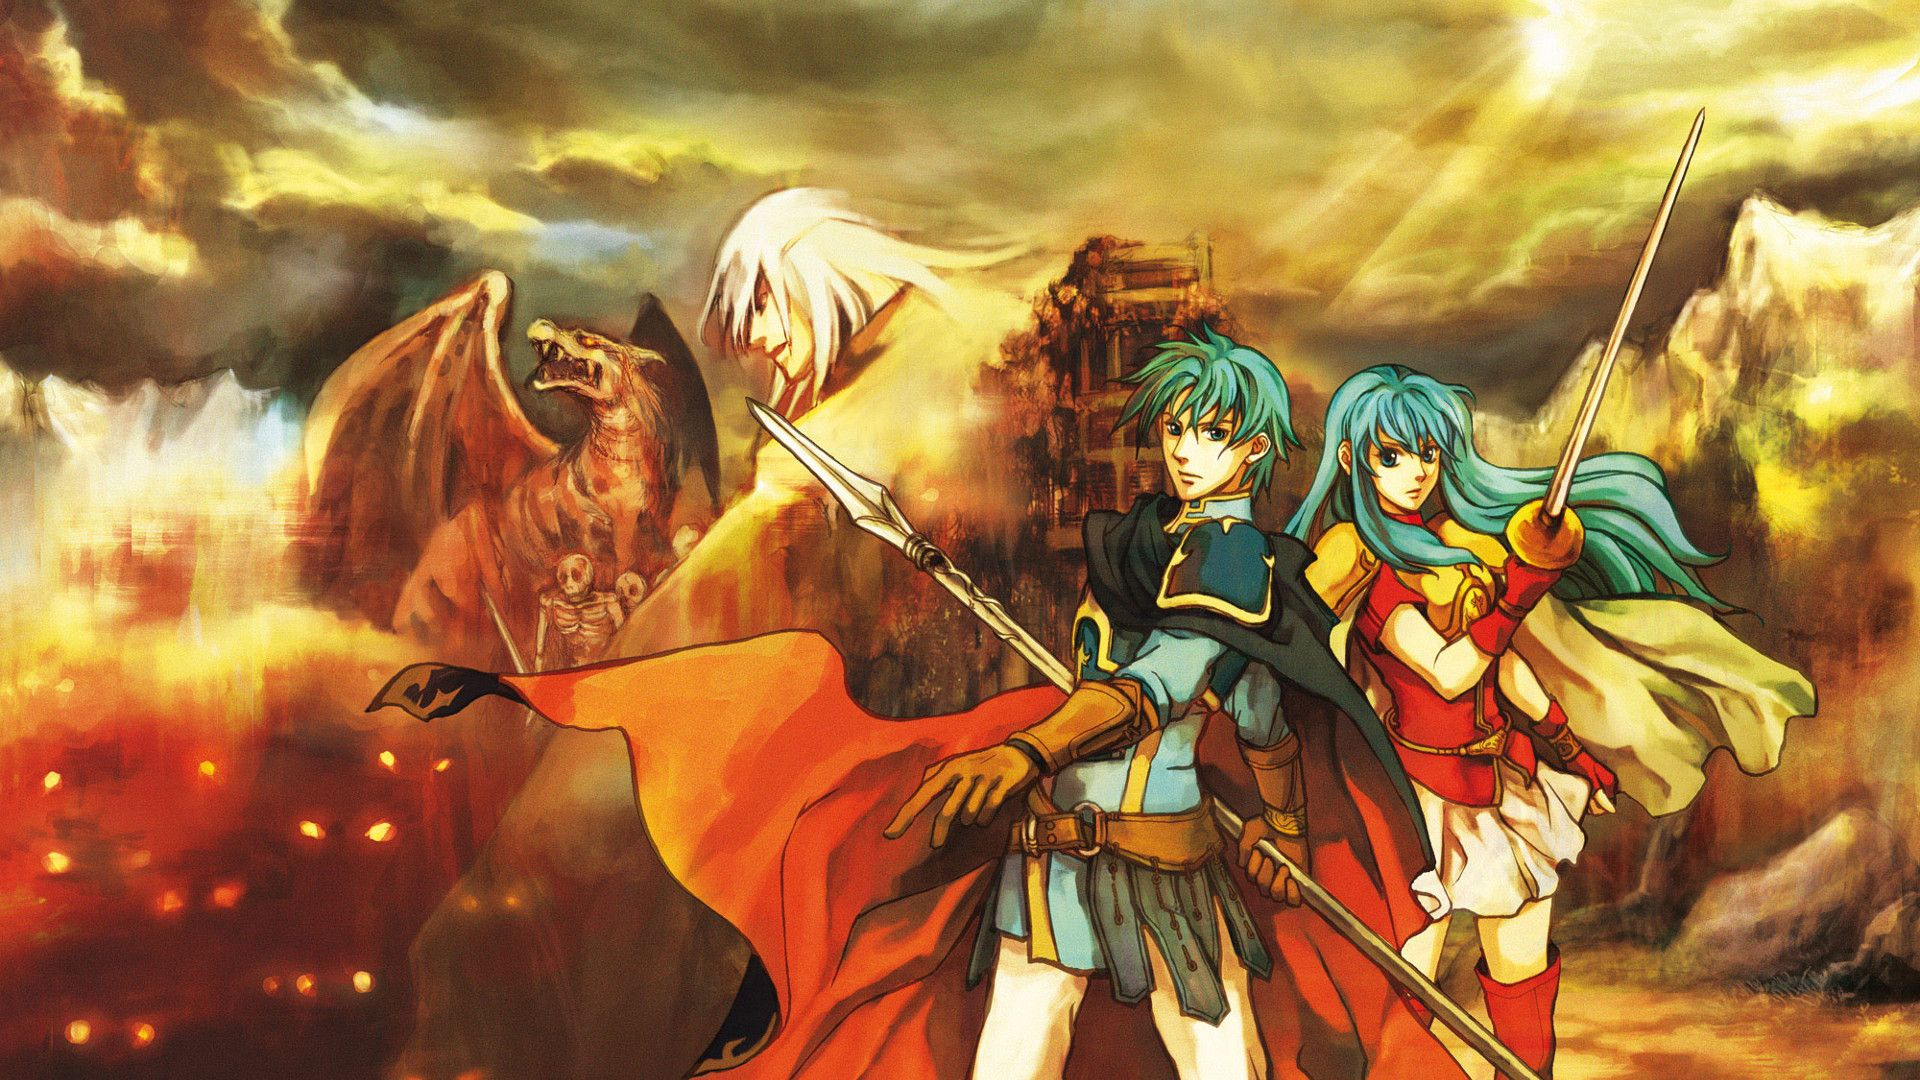 Fire Emblem Sacred Stones Wallpaper Widescreen Fgc Fire Emblem